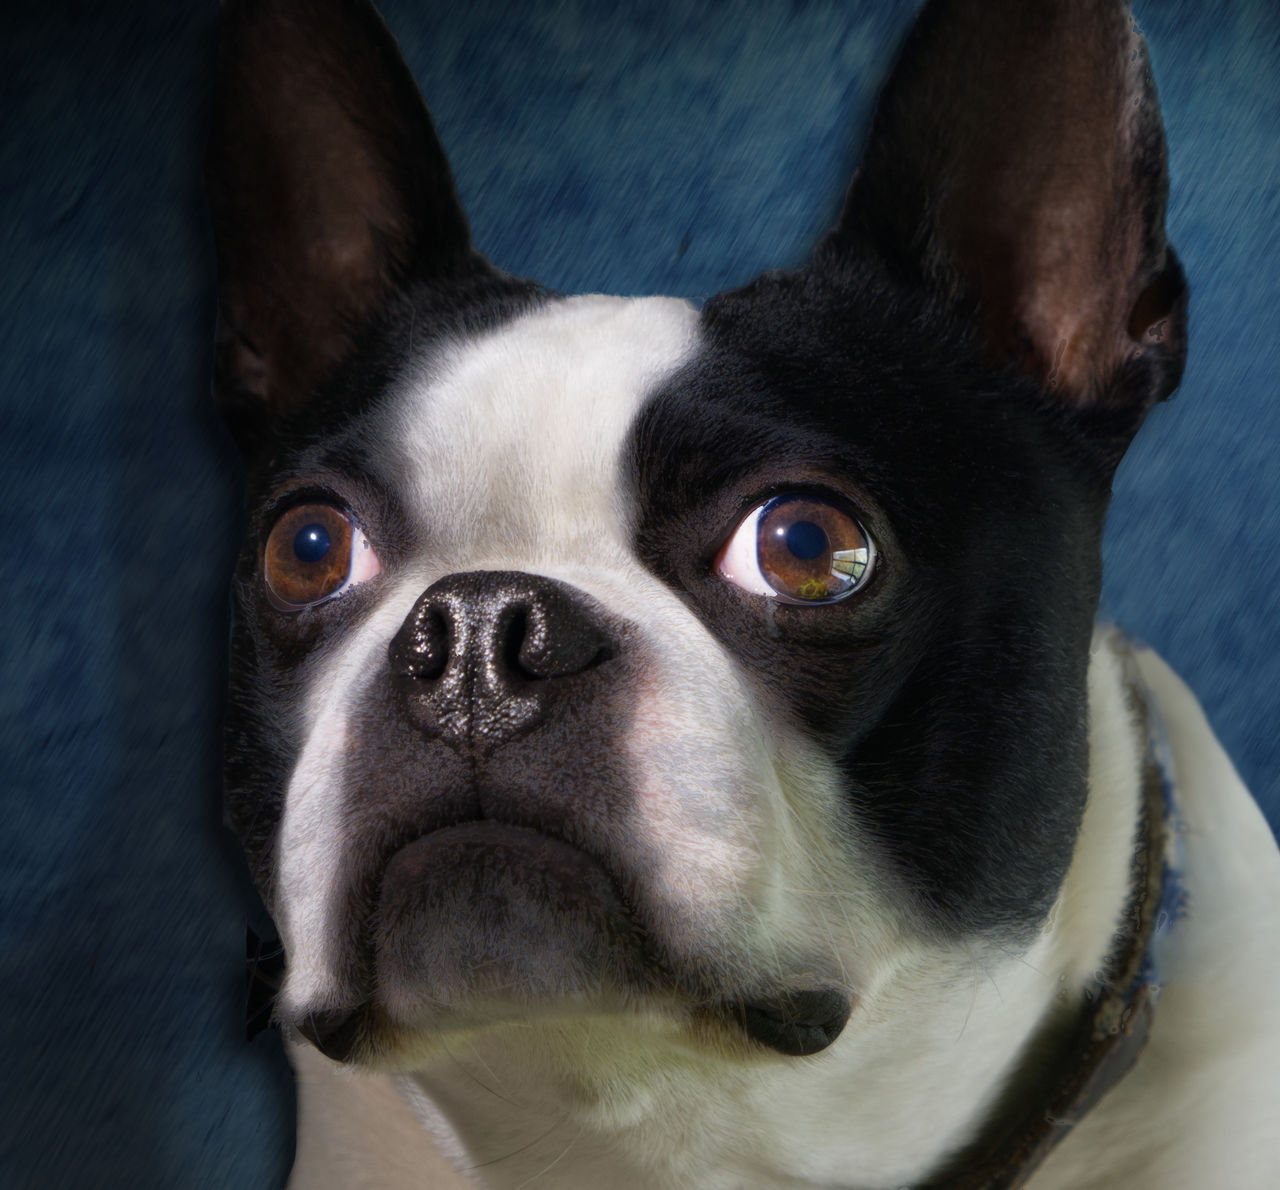 mammal, one animal, pets, domestic animals, domestic, dog, canine, vertebrate, looking at camera, portrait, close-up, boston terrier, indoors, animal body part, no people, high angle view, animal eye